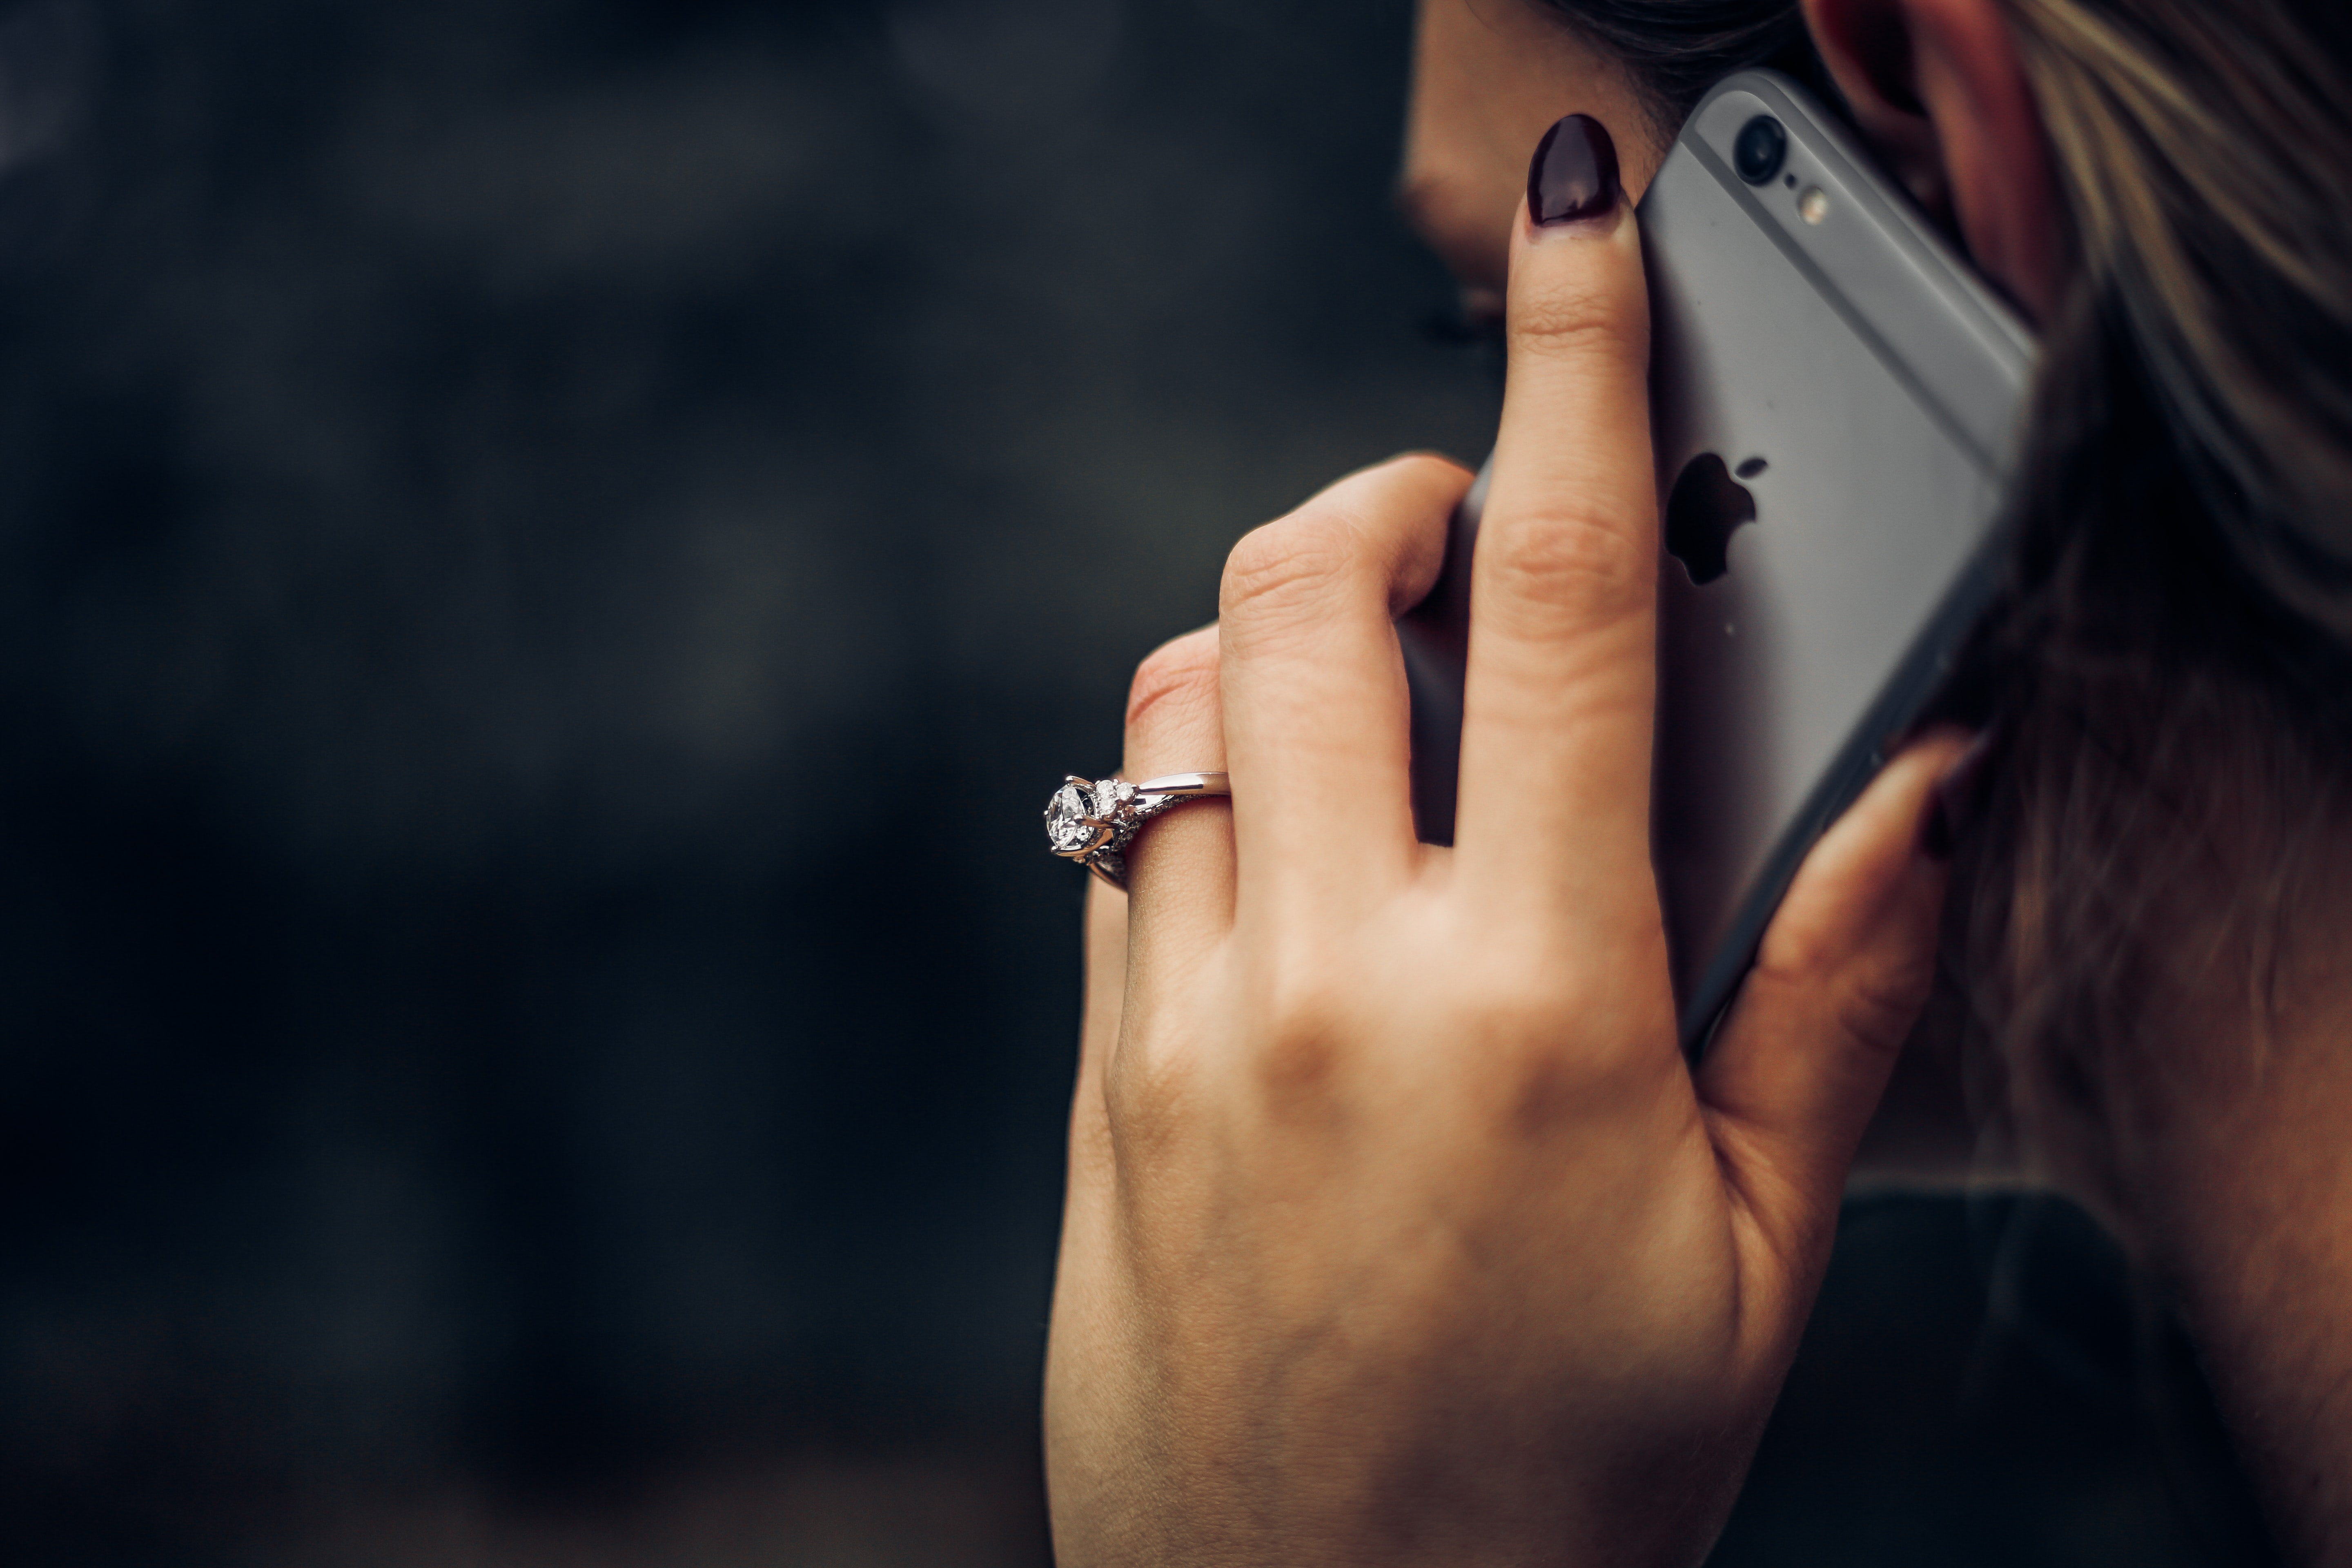 A women holding a phone close to her ear. A large diamond ring is on her wedding finger